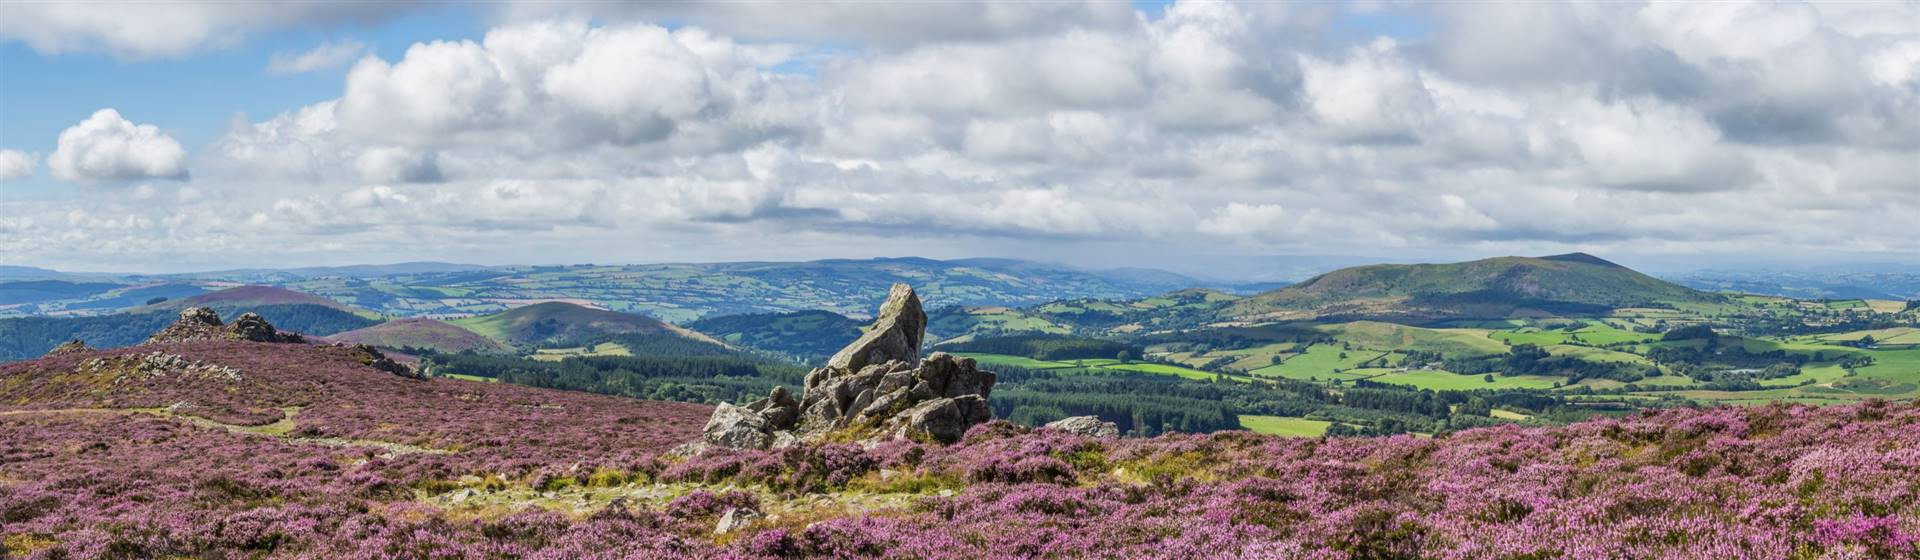 """<img src=""""view-from-stiperstones-to-corndon-hill-shutterstocklr.jpeg"""" alt=""""View of Shropshire""""/>"""